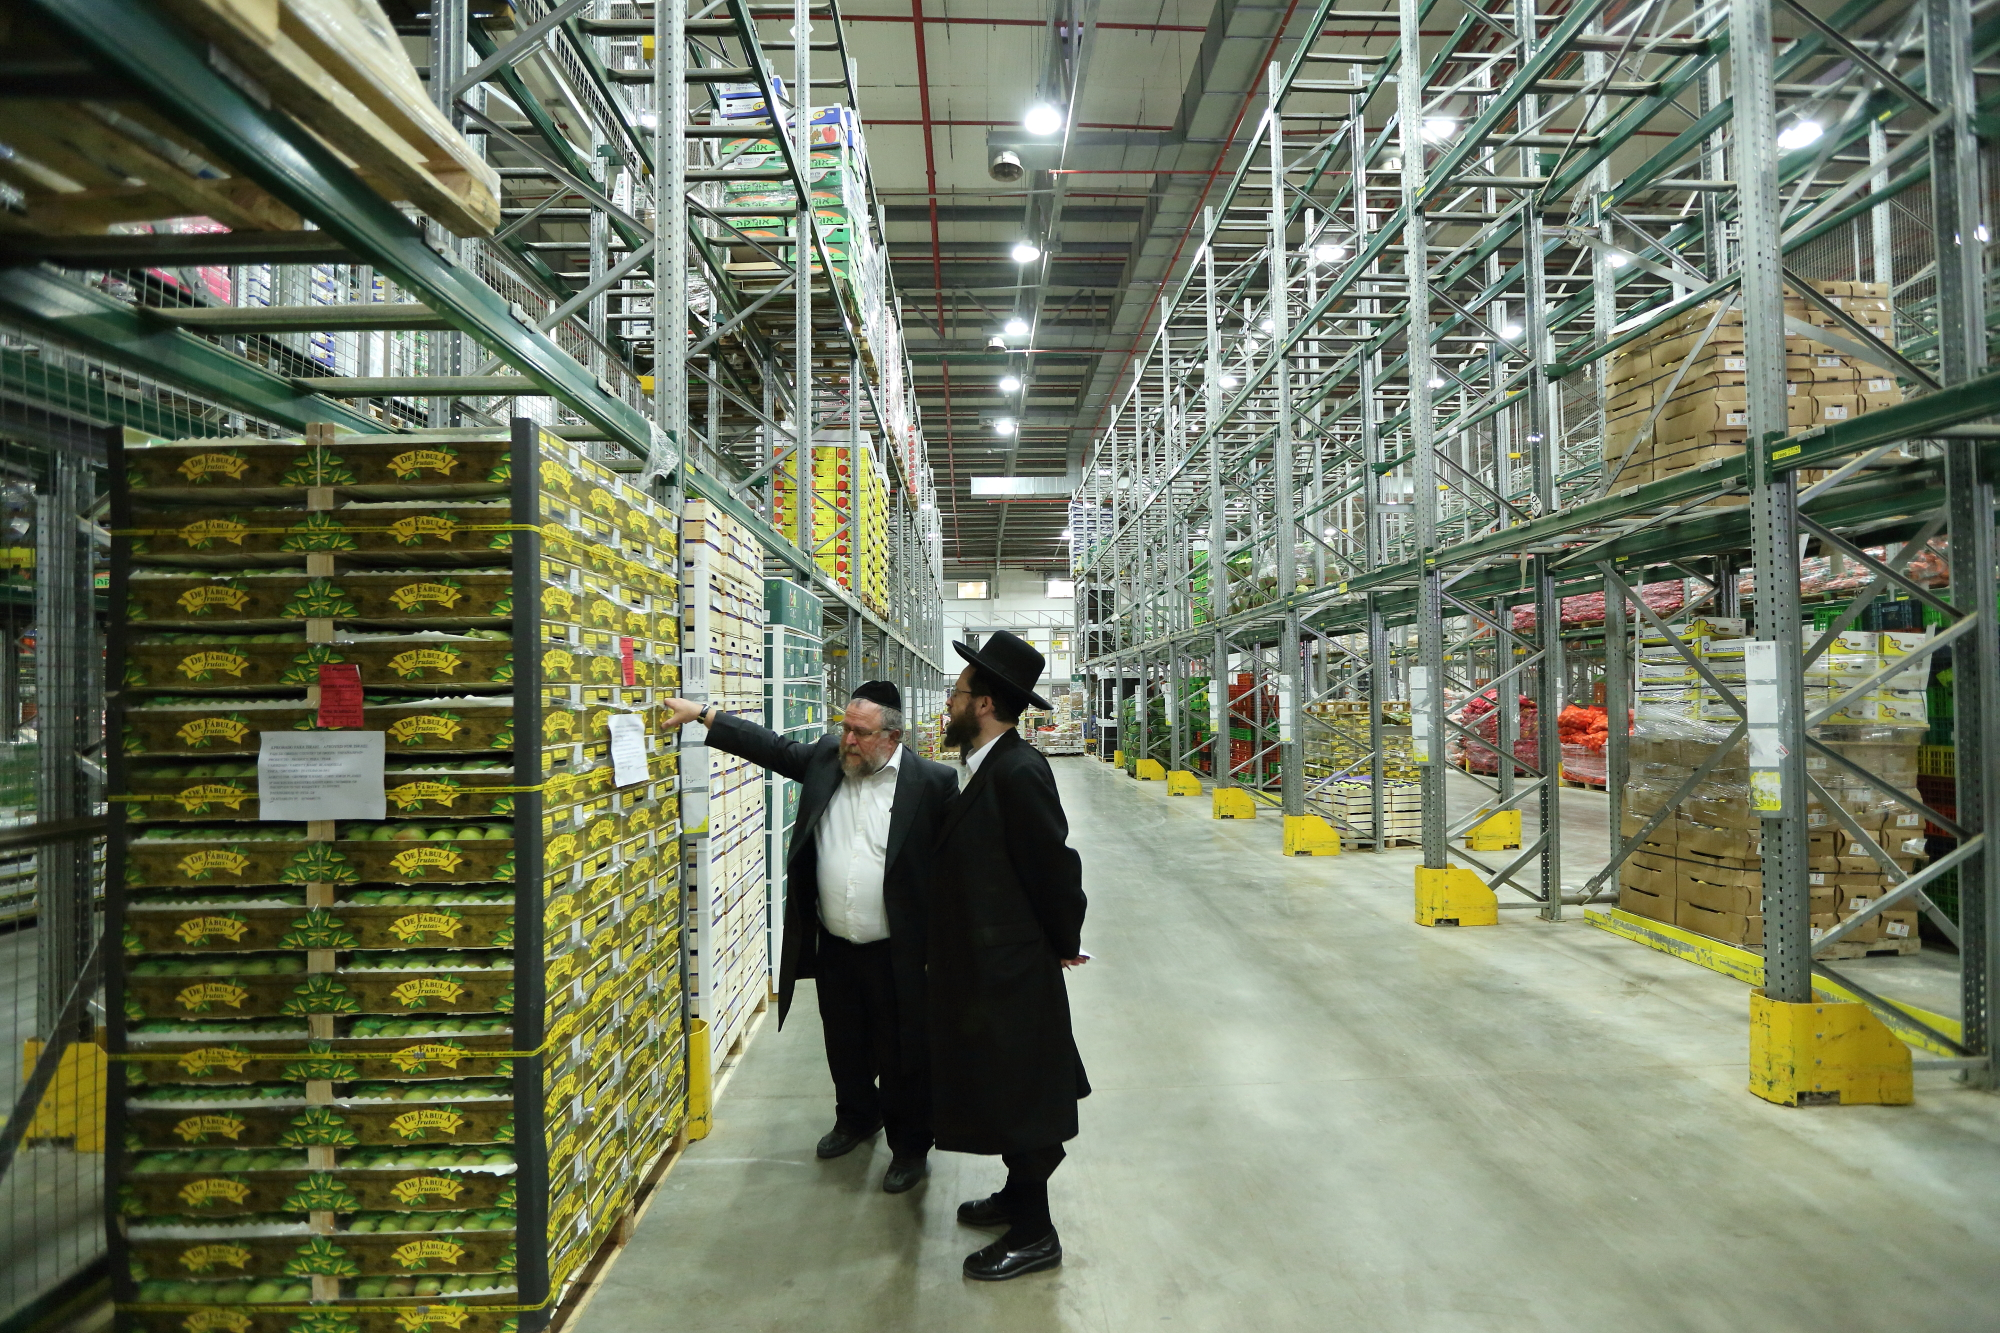 Senior rabbinate kashrut official to stand trial for bribery | The